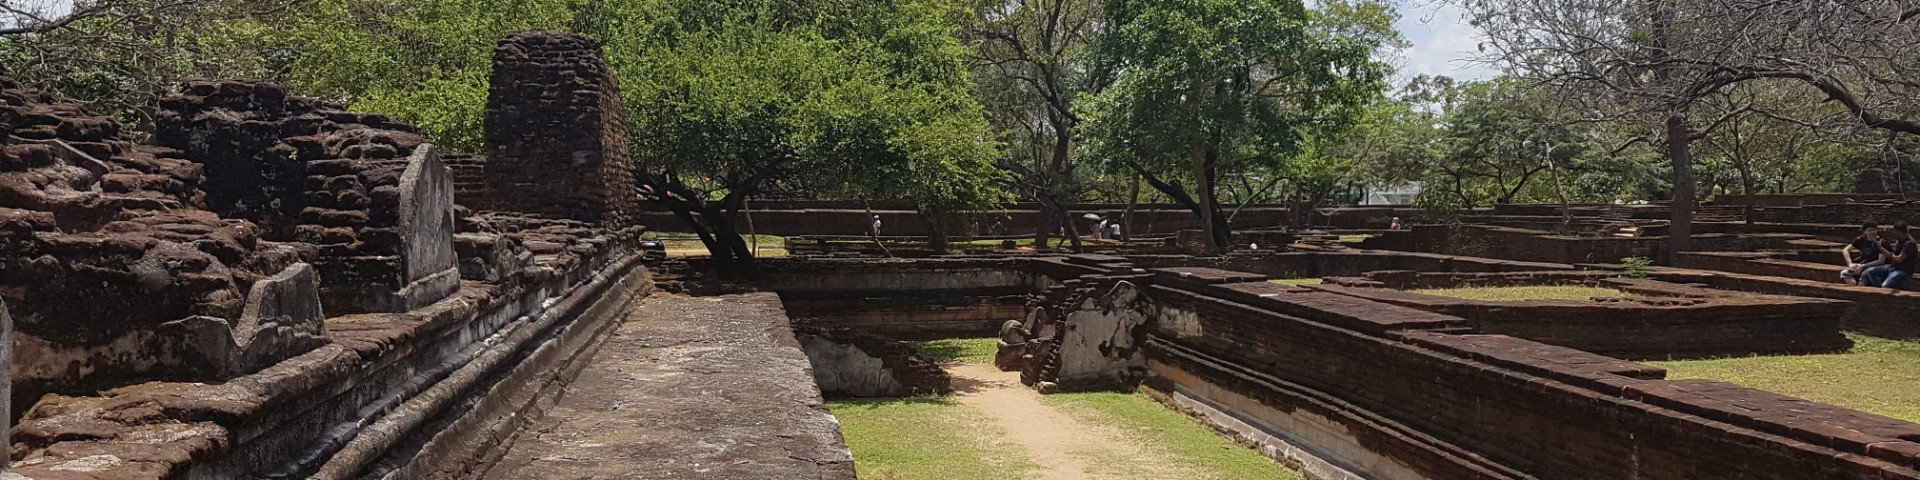 Part of the Citidel, Polonnaruwa Historical Site